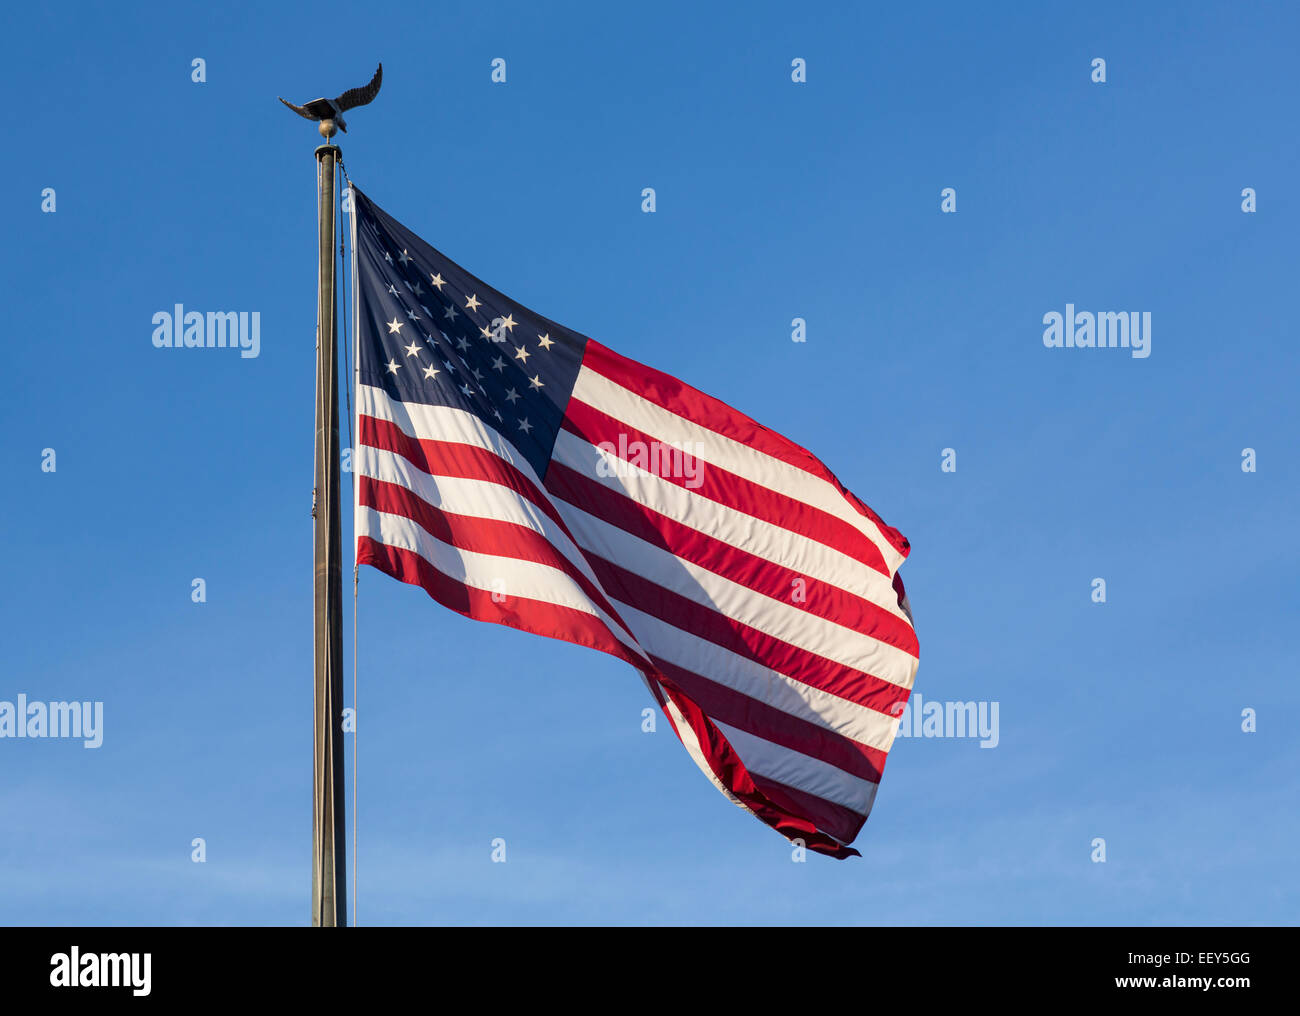 USA flag of stars and stripes with eagle flagpole against blue sky - Stock Image